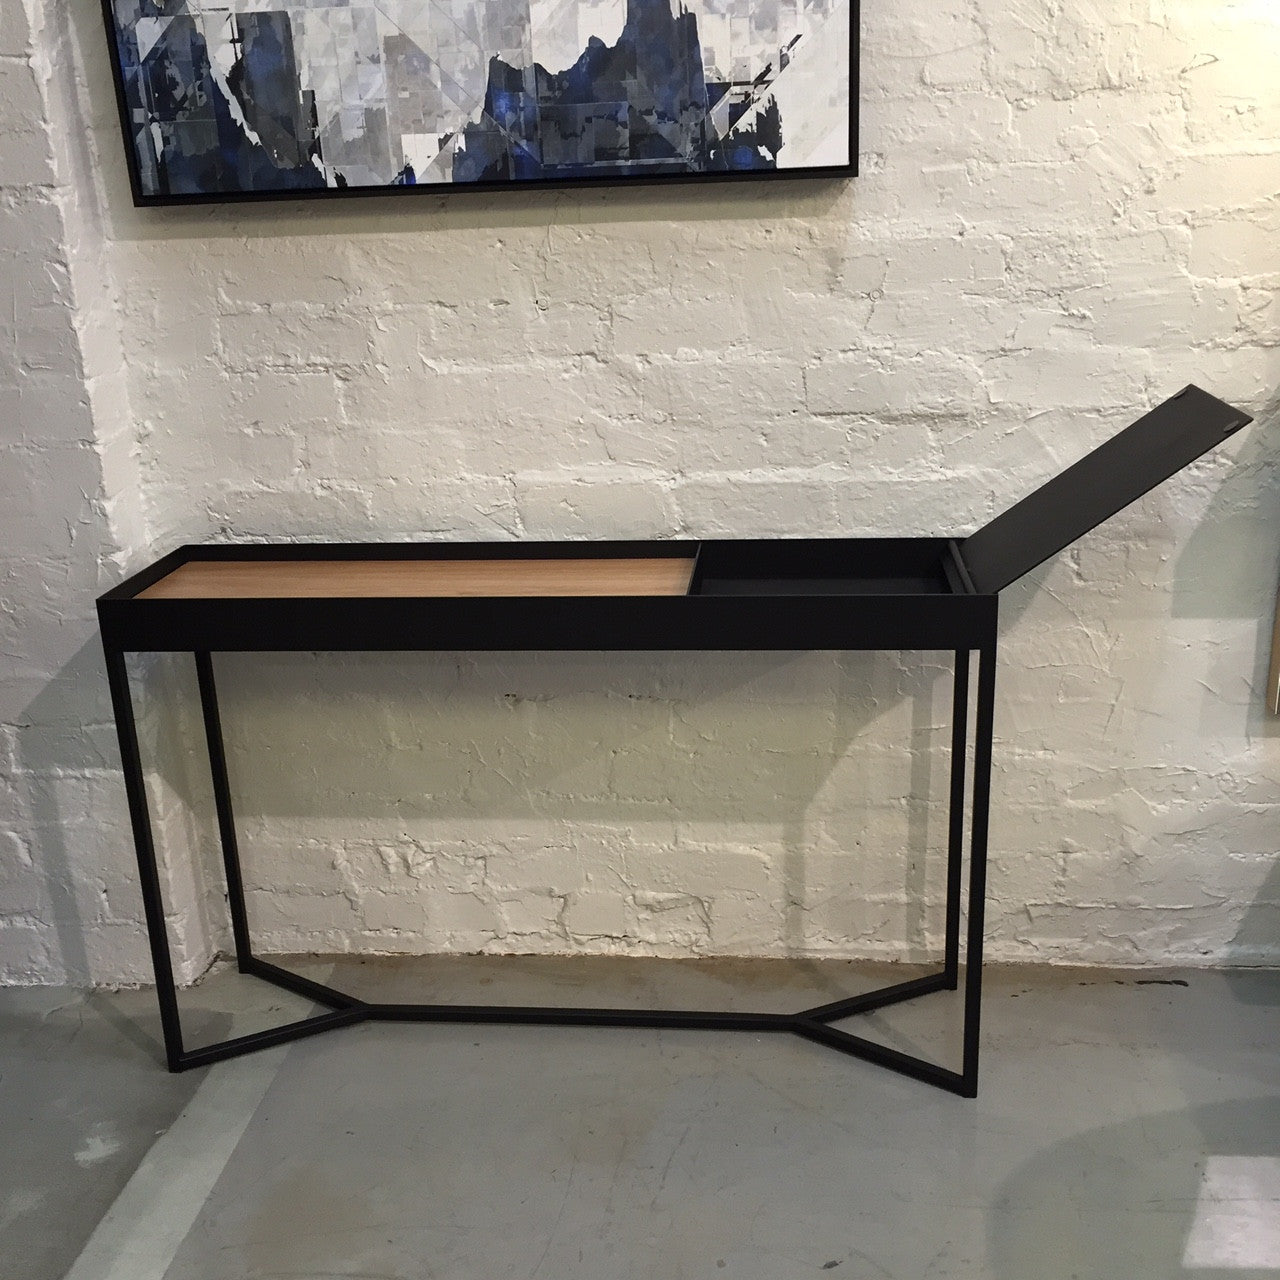 tray storage console table  clu - tray storage console table